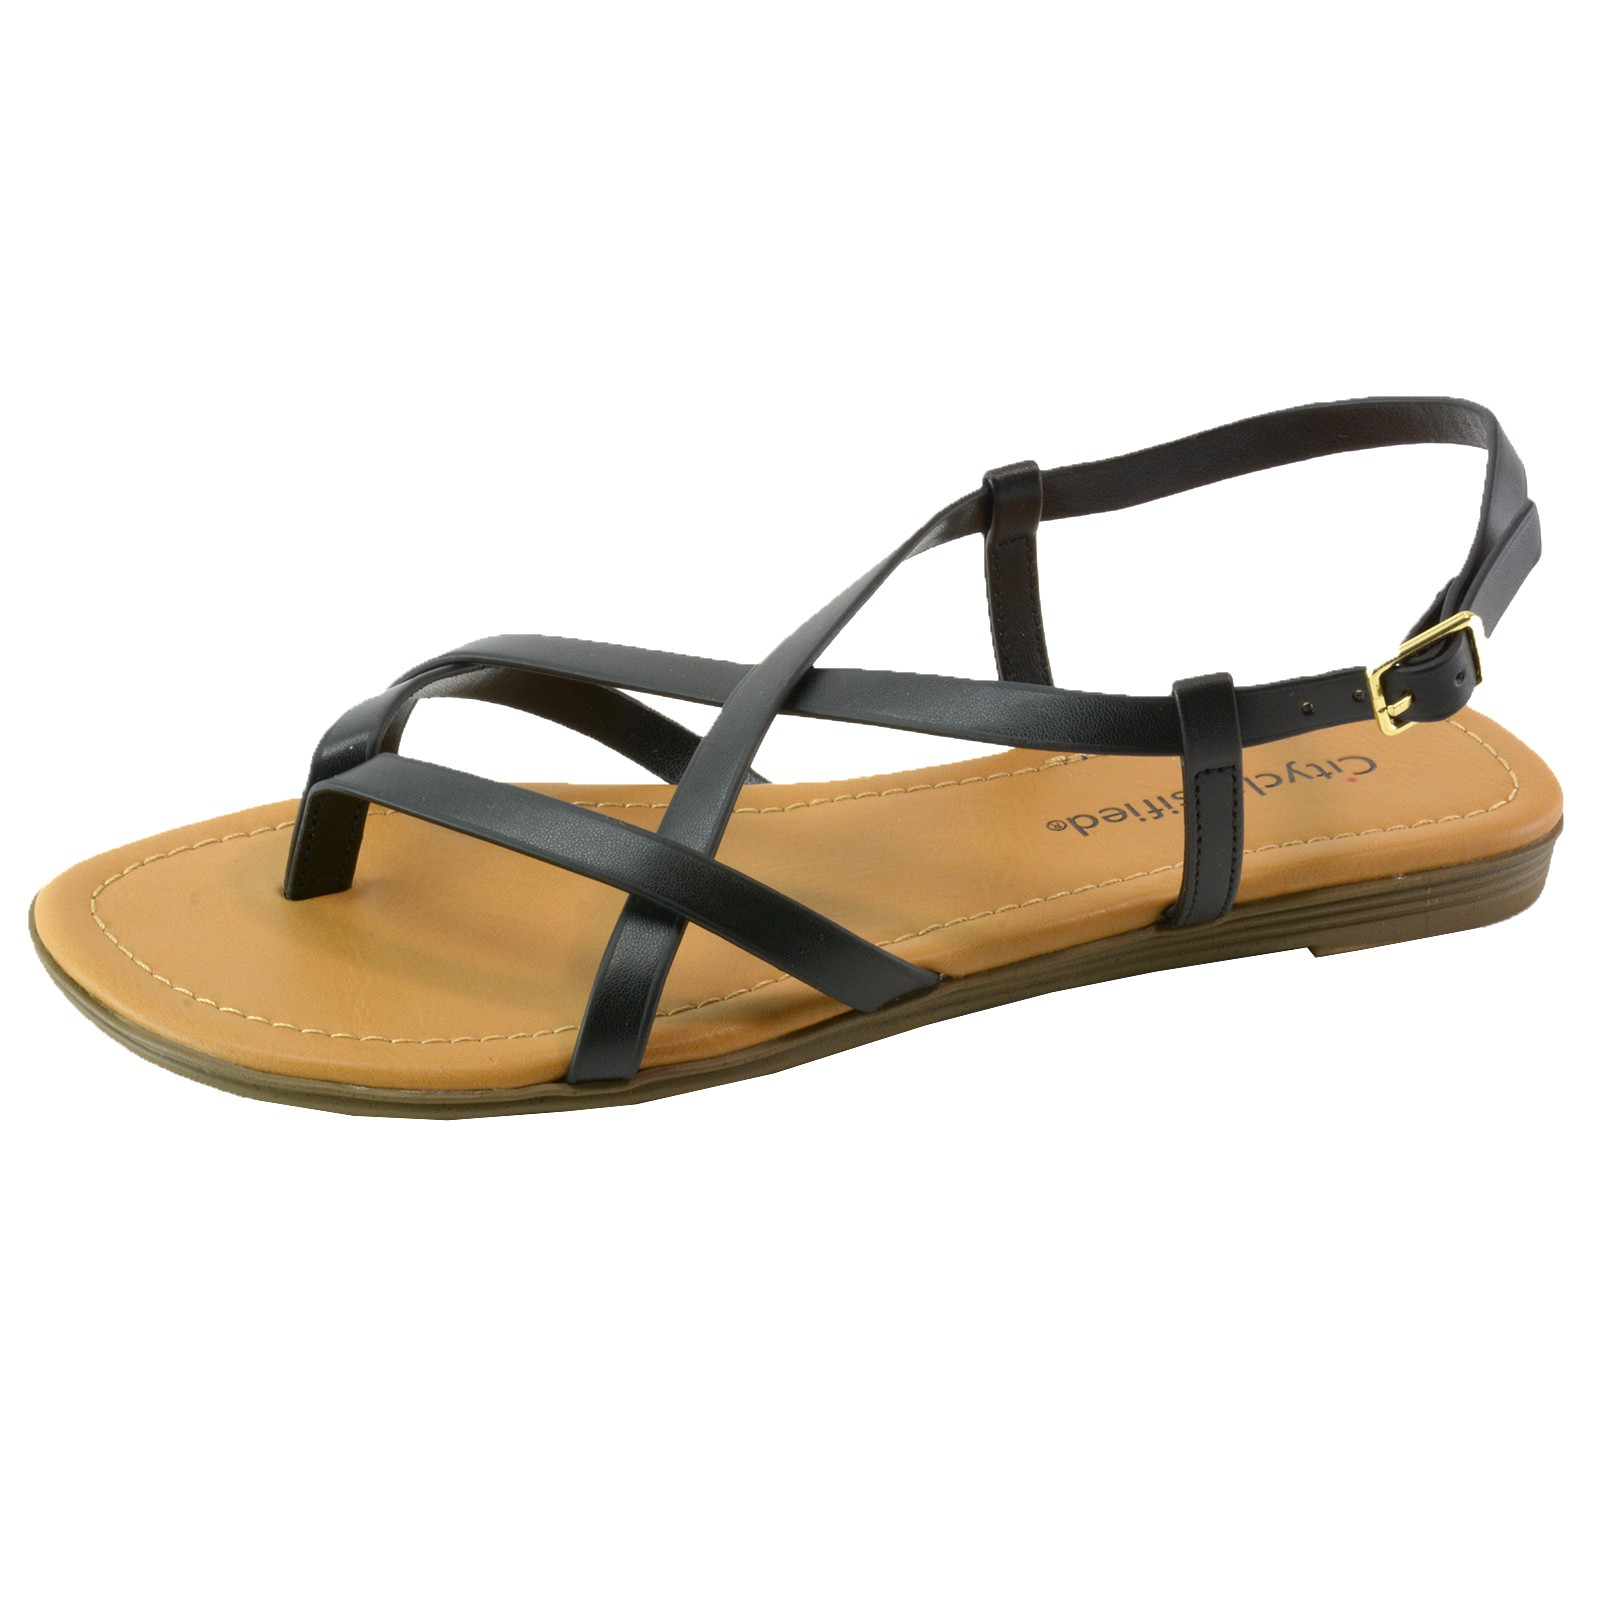 city classified women s flat shoes strappy thong slingback. Black Bedroom Furniture Sets. Home Design Ideas